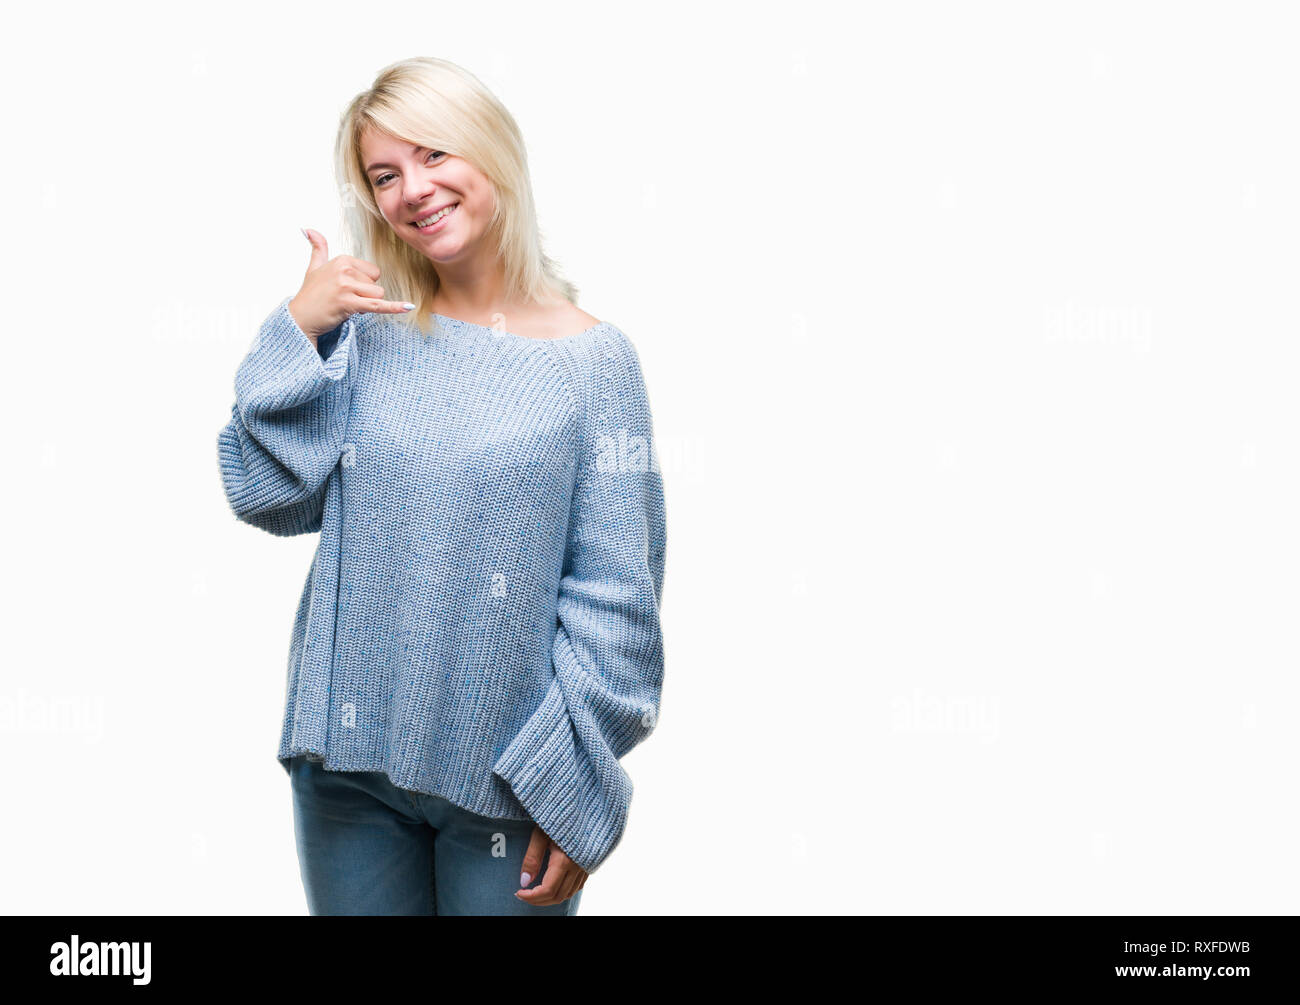 Young beautiful blonde woman wearing winter sweater over isolated background smiling doing phone gesture with hand and fingers like talking on the tel - Stock Image